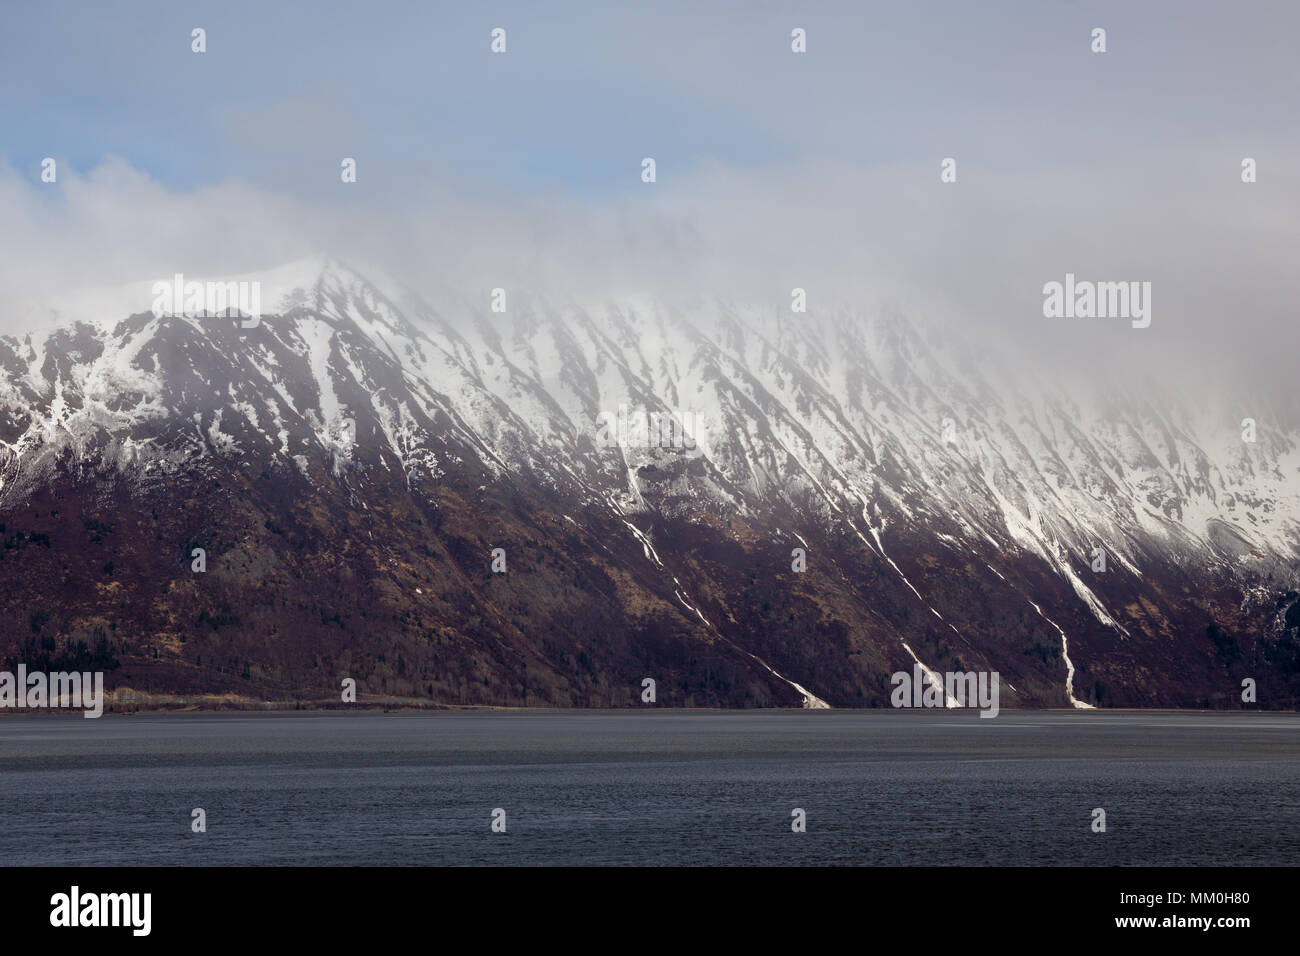 Turnagain Arm, Tidal Flats, Trees, Mountains and Water. Near Hope, Alaska. Rocky Shoreline. Snow capped Chugach Mountains. Kenai Peninsula Windy Point - Stock Image